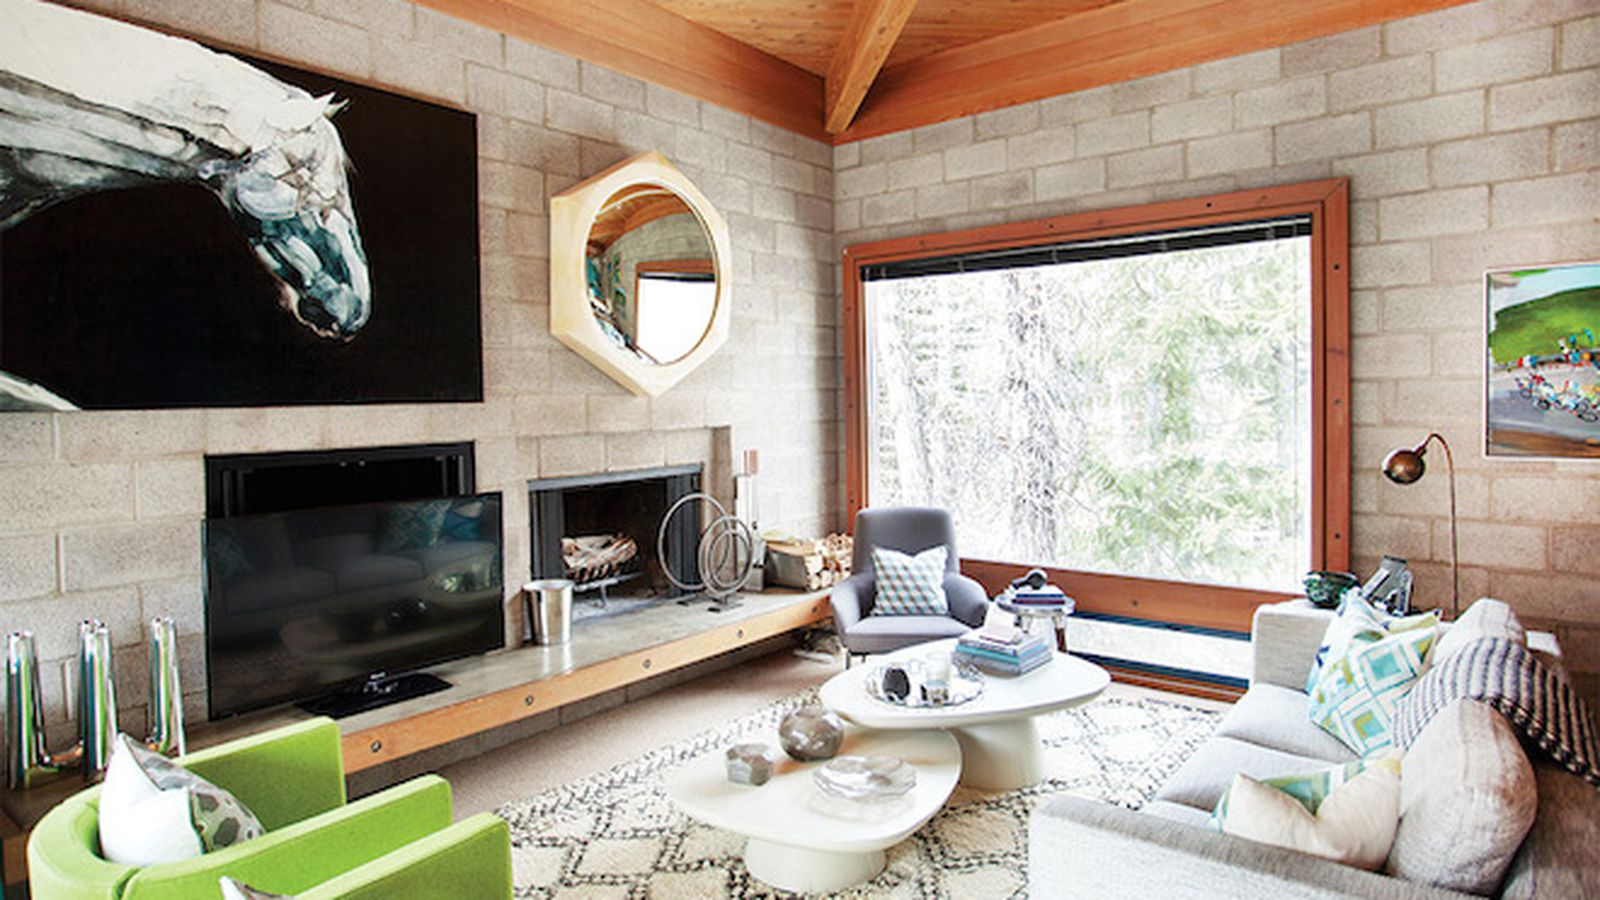 Step Inside A Surprisingly Glam Cinder Block House In